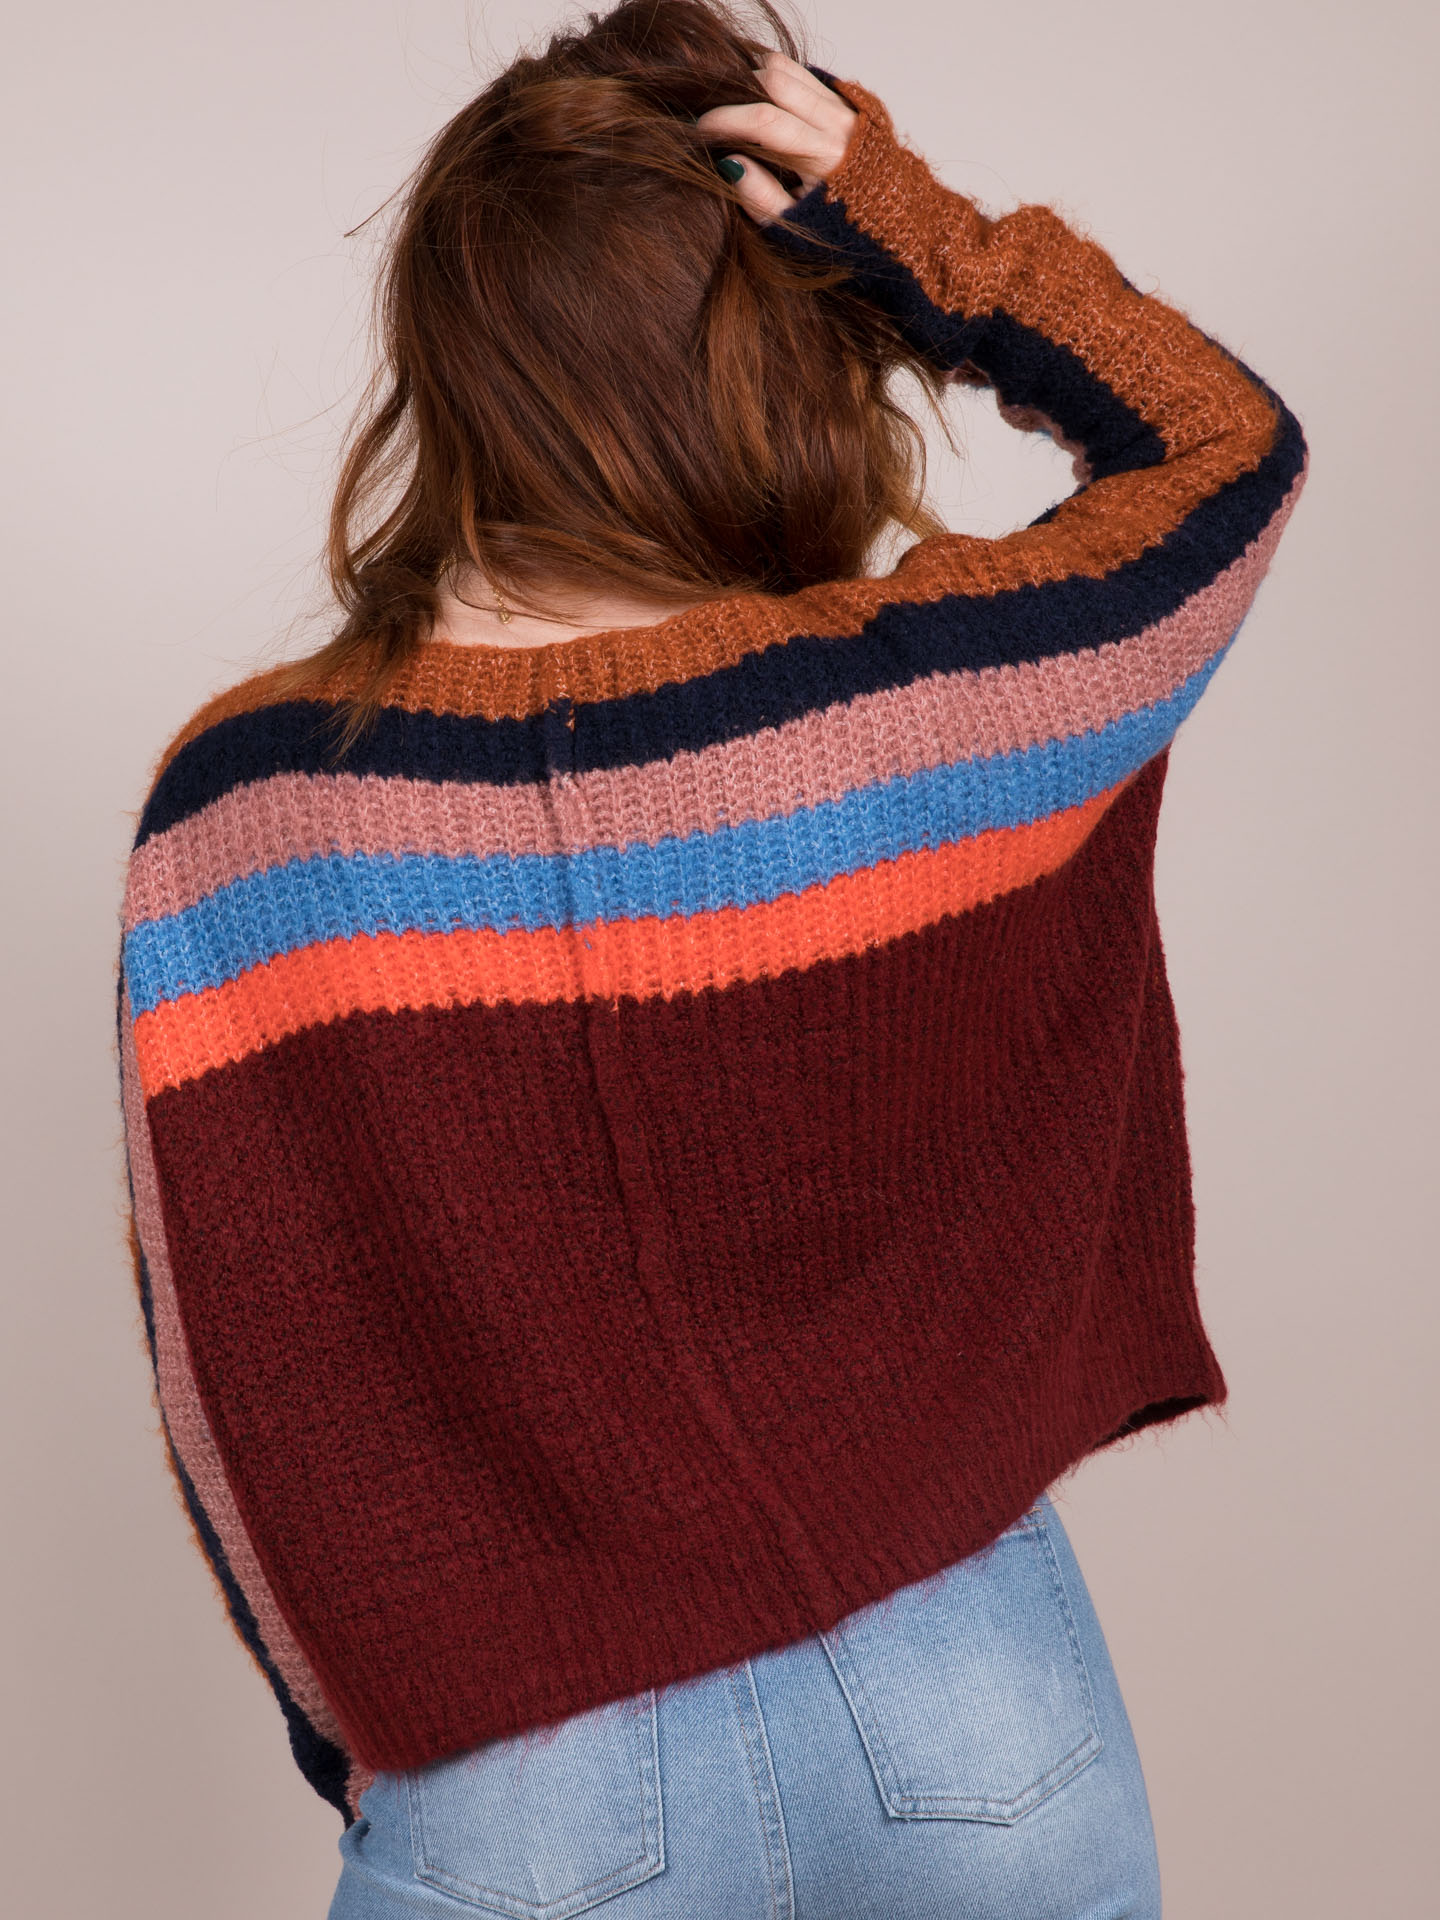 Basket Case Sweater Striped Knitted Back